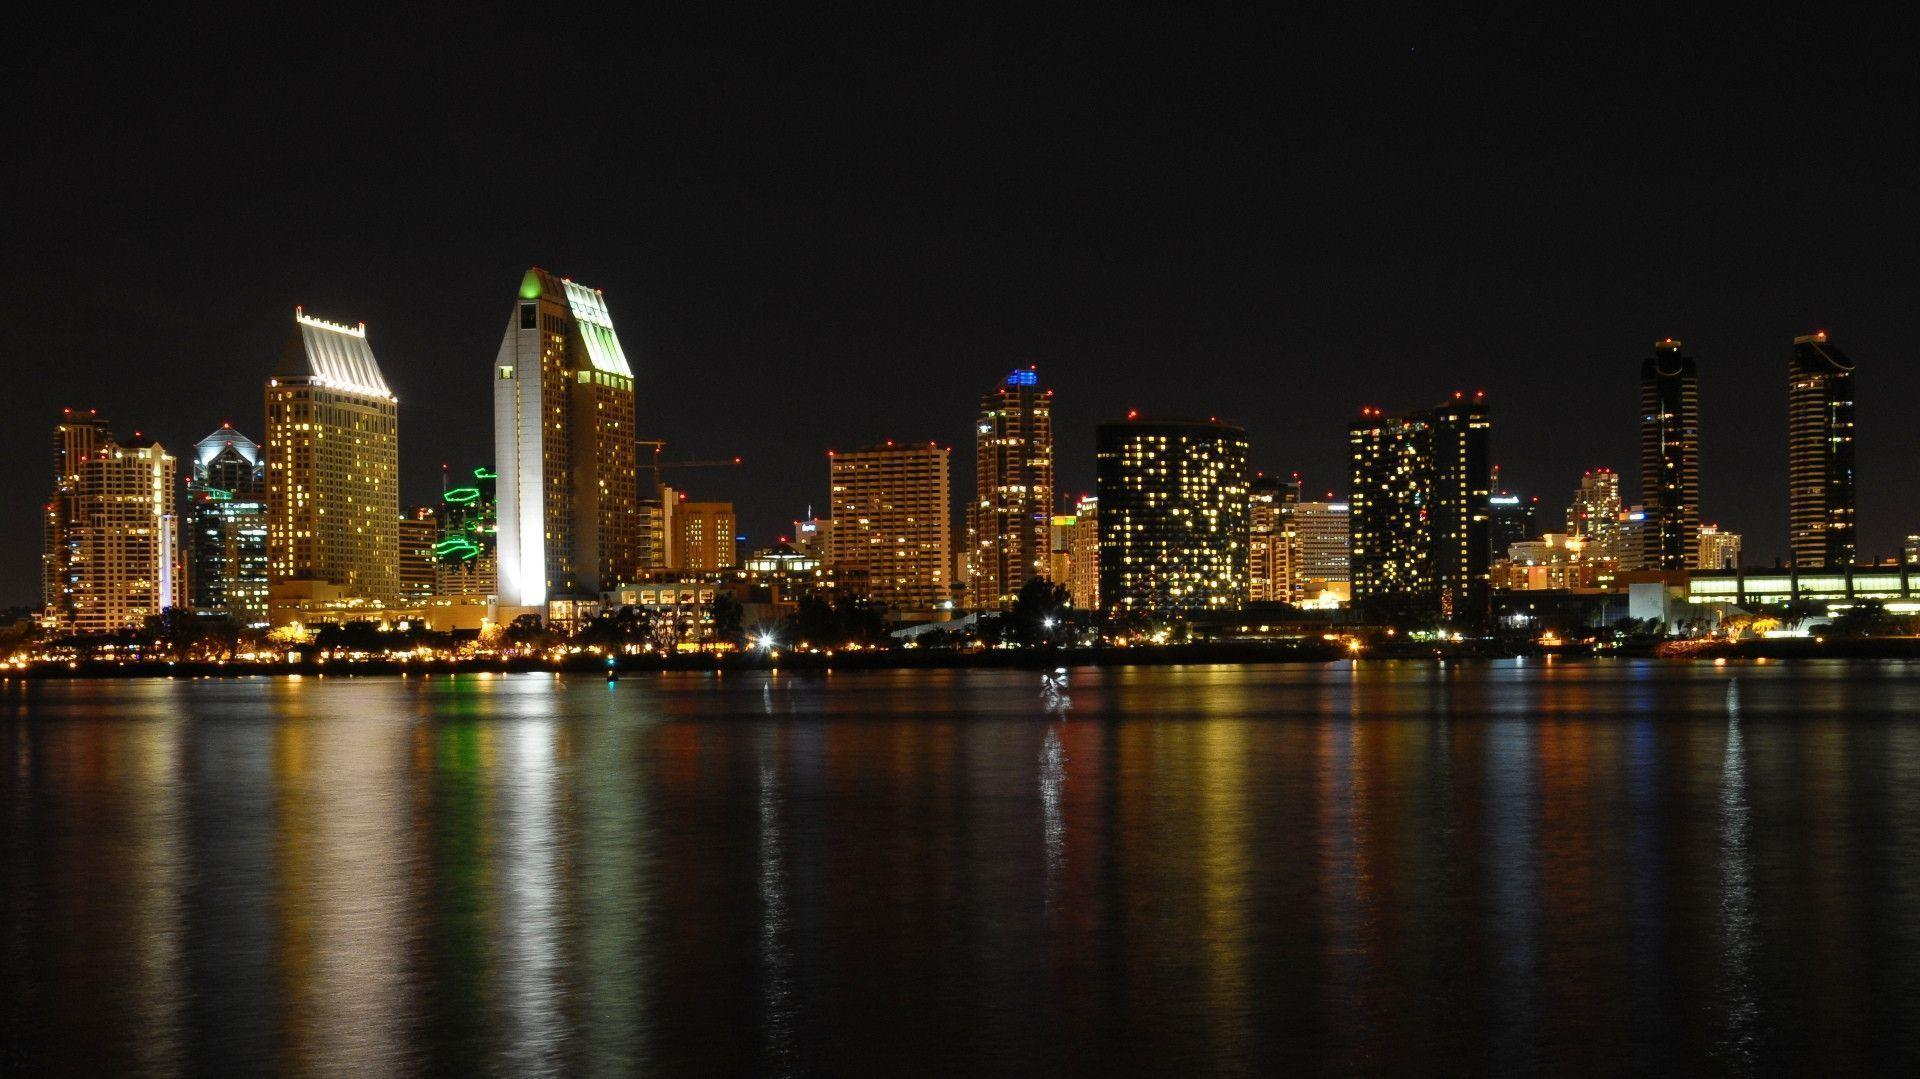 wallpaper san diego  Wallpapers San Diego - Wallpaper Cave